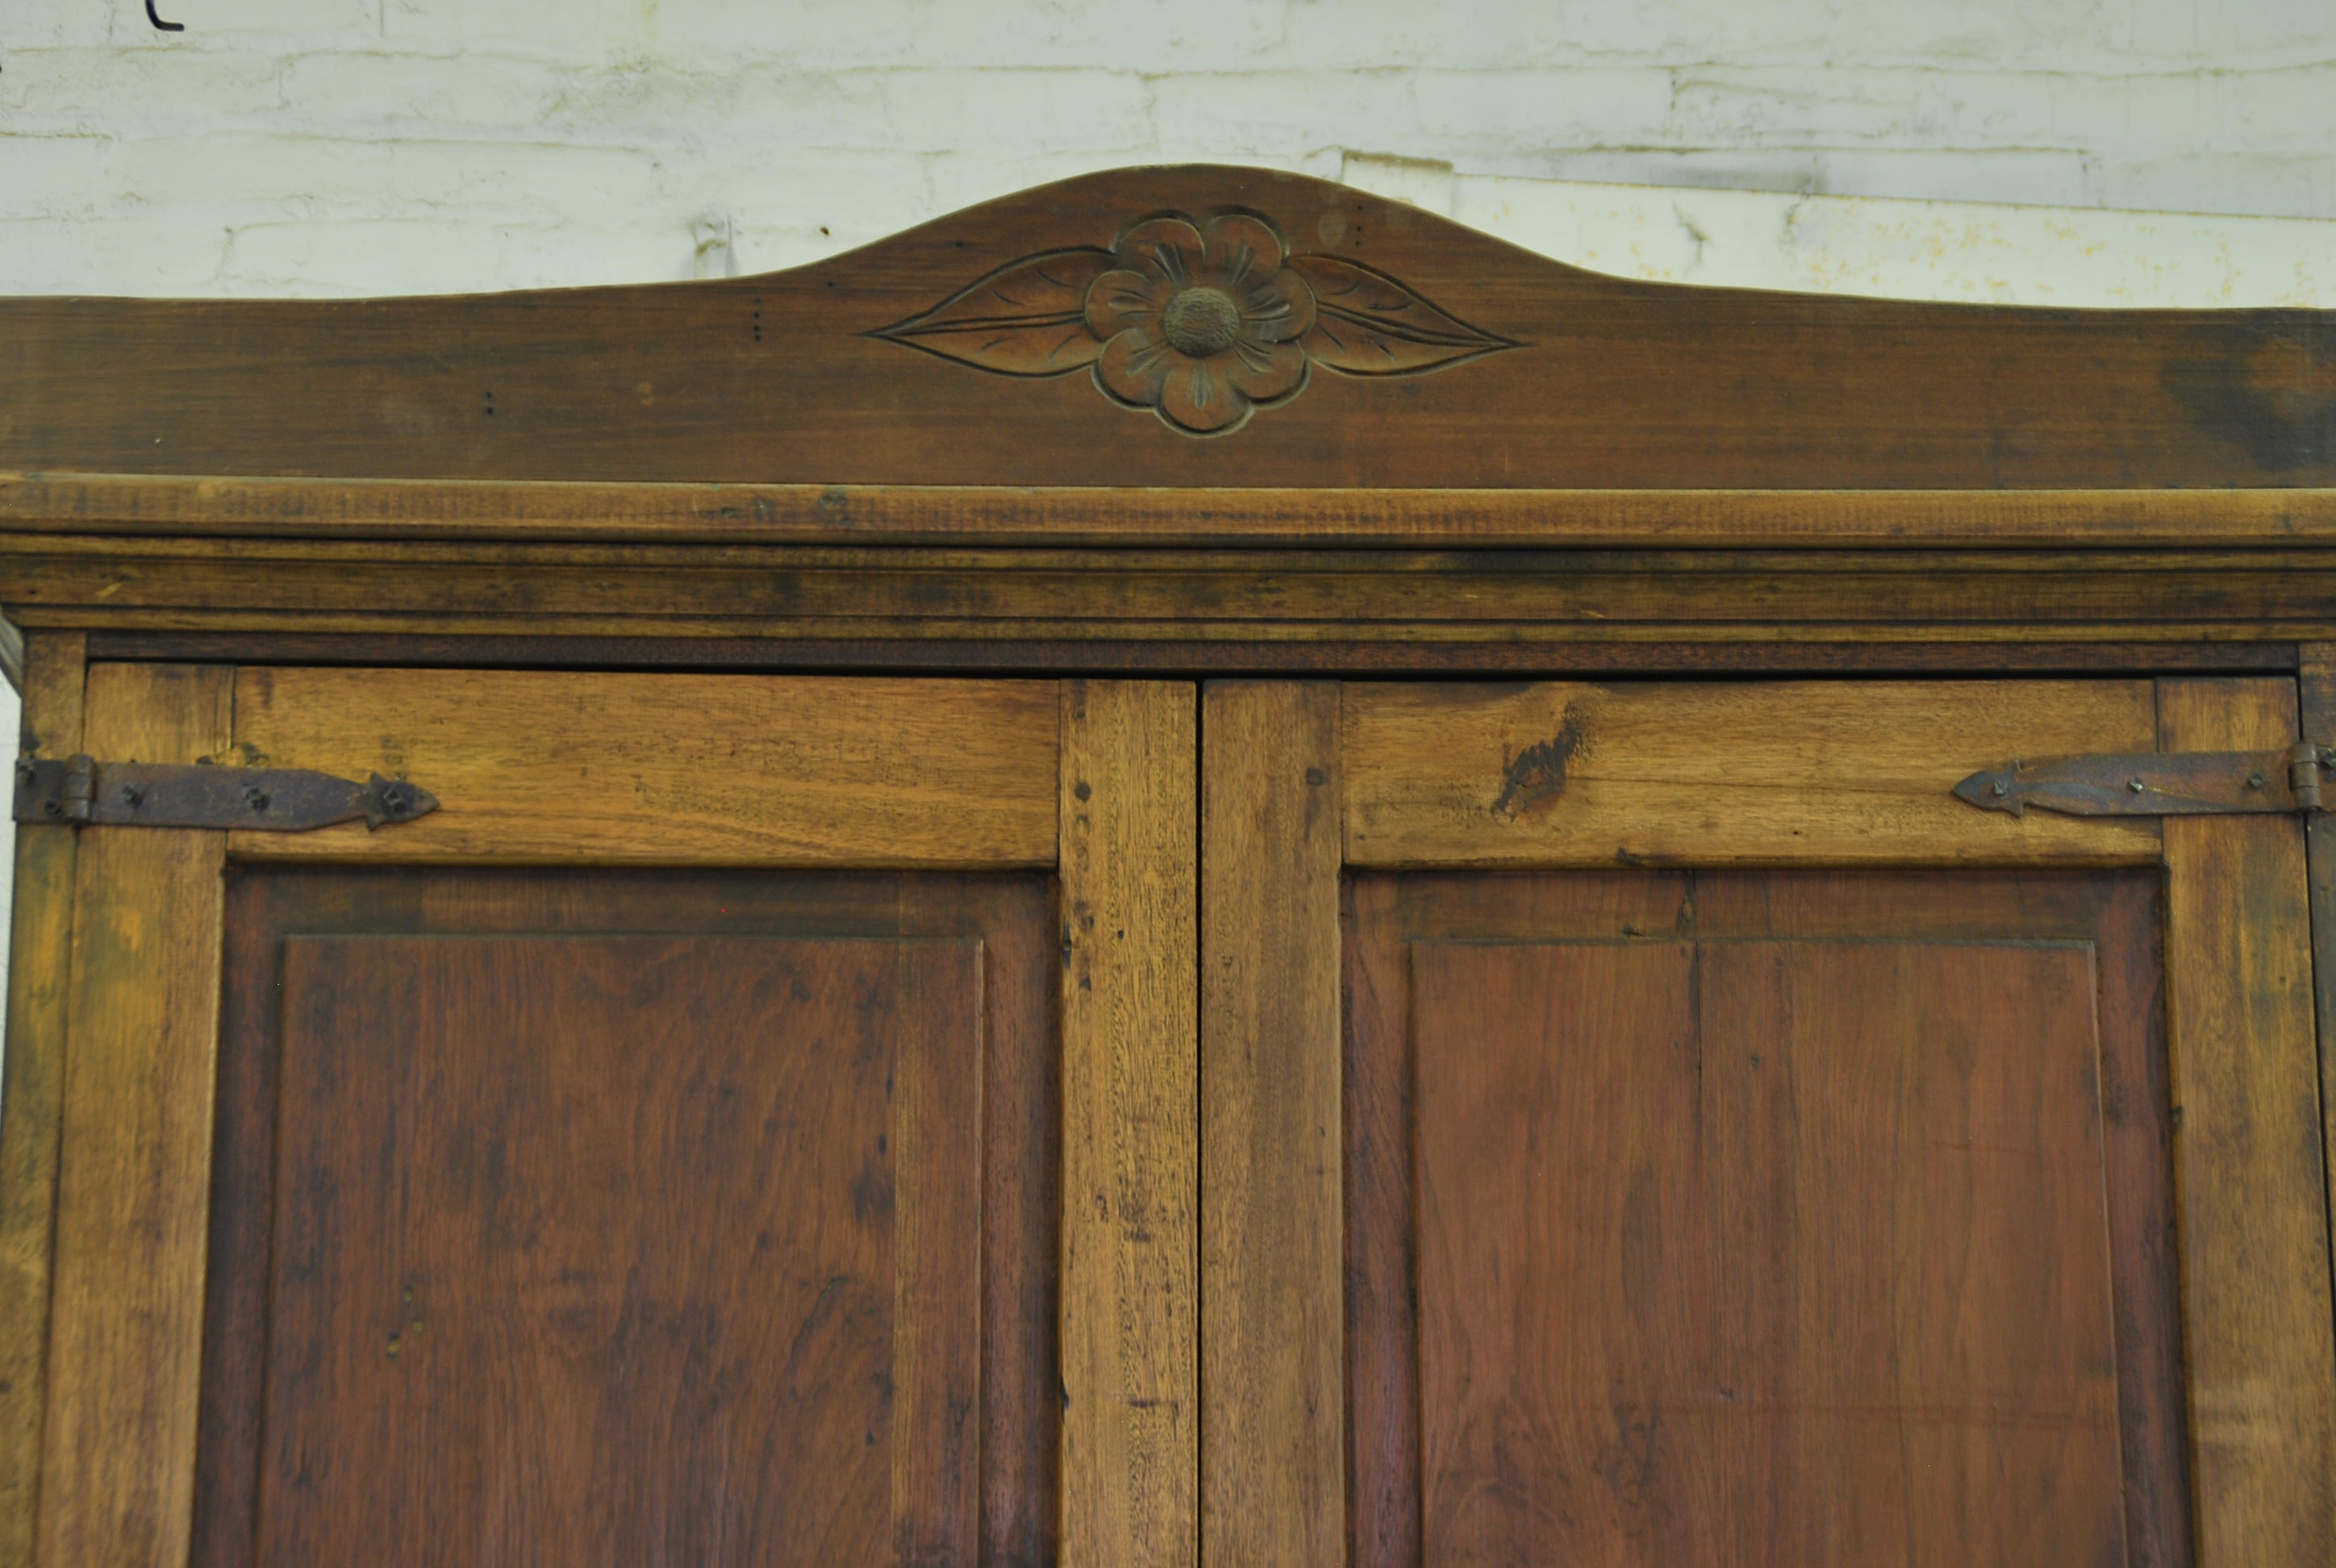 Barn Wood Armoire - Pediment Floral Carving AR-011